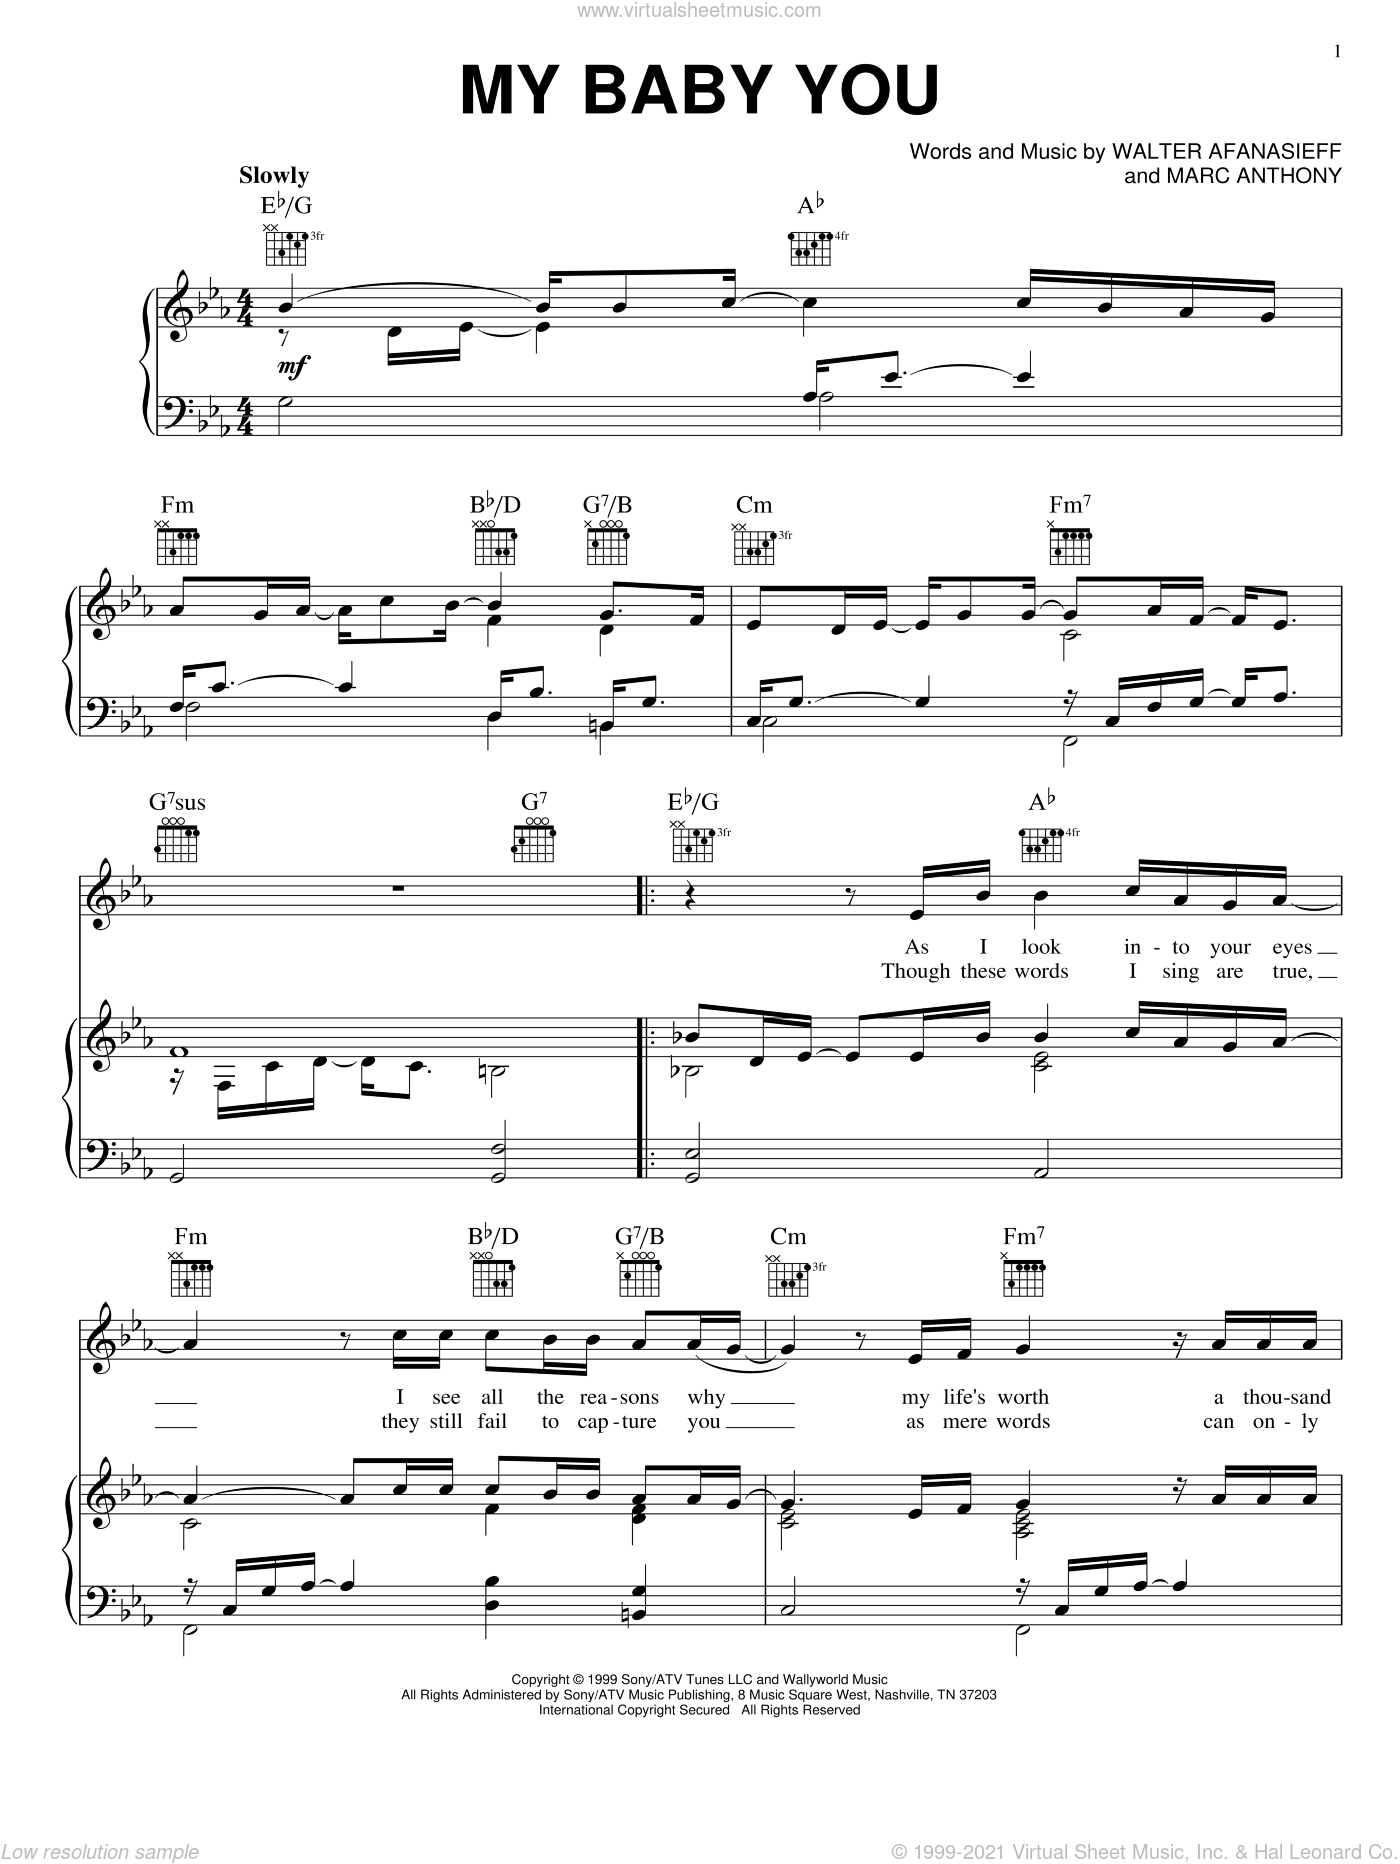 My Baby You sheet music for voice, piano or guitar by Walter Afanasieff